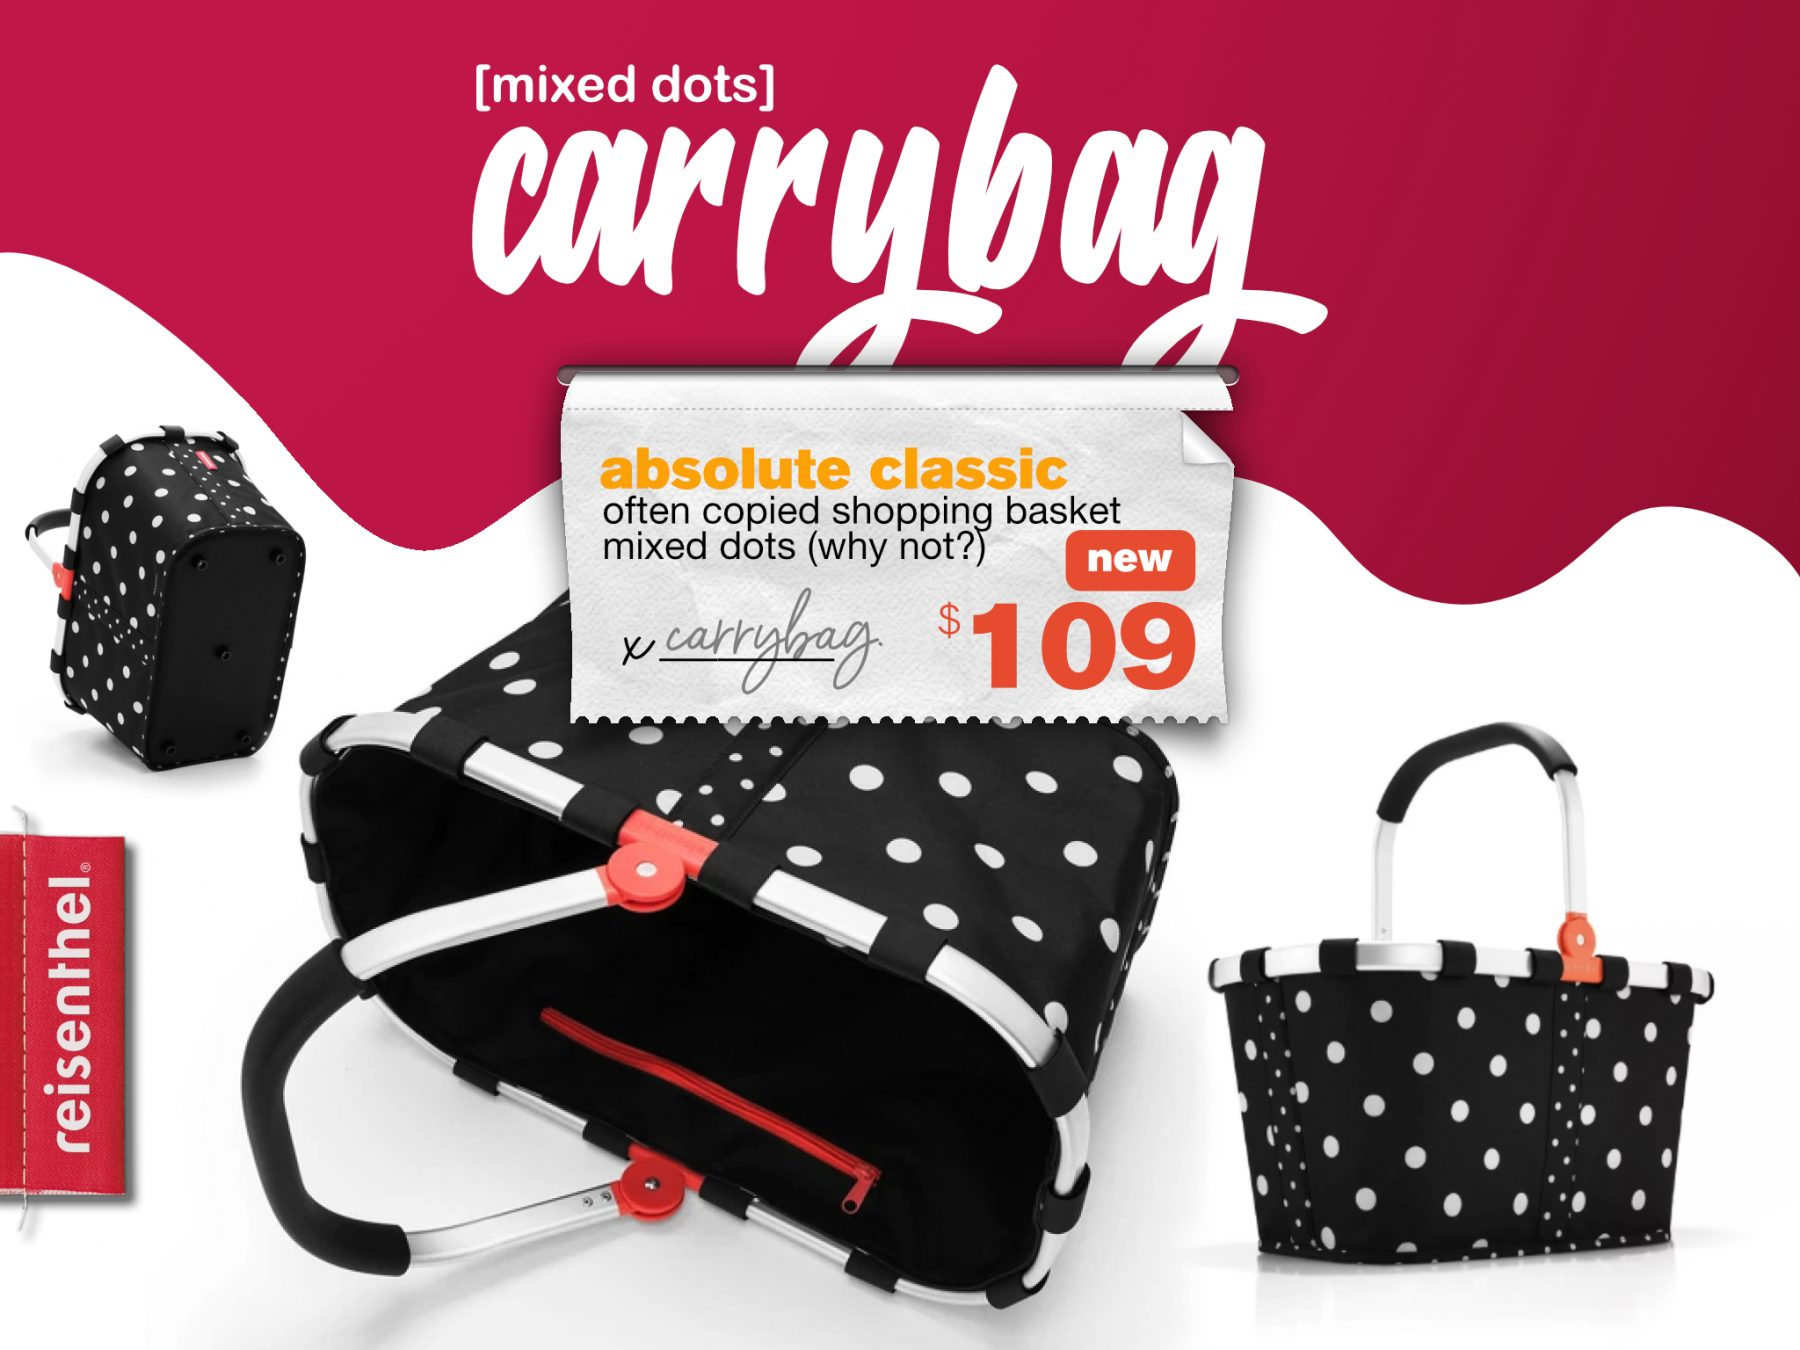 Berries & Cream Reisenthel Singapore Carrybag Mixed Dots